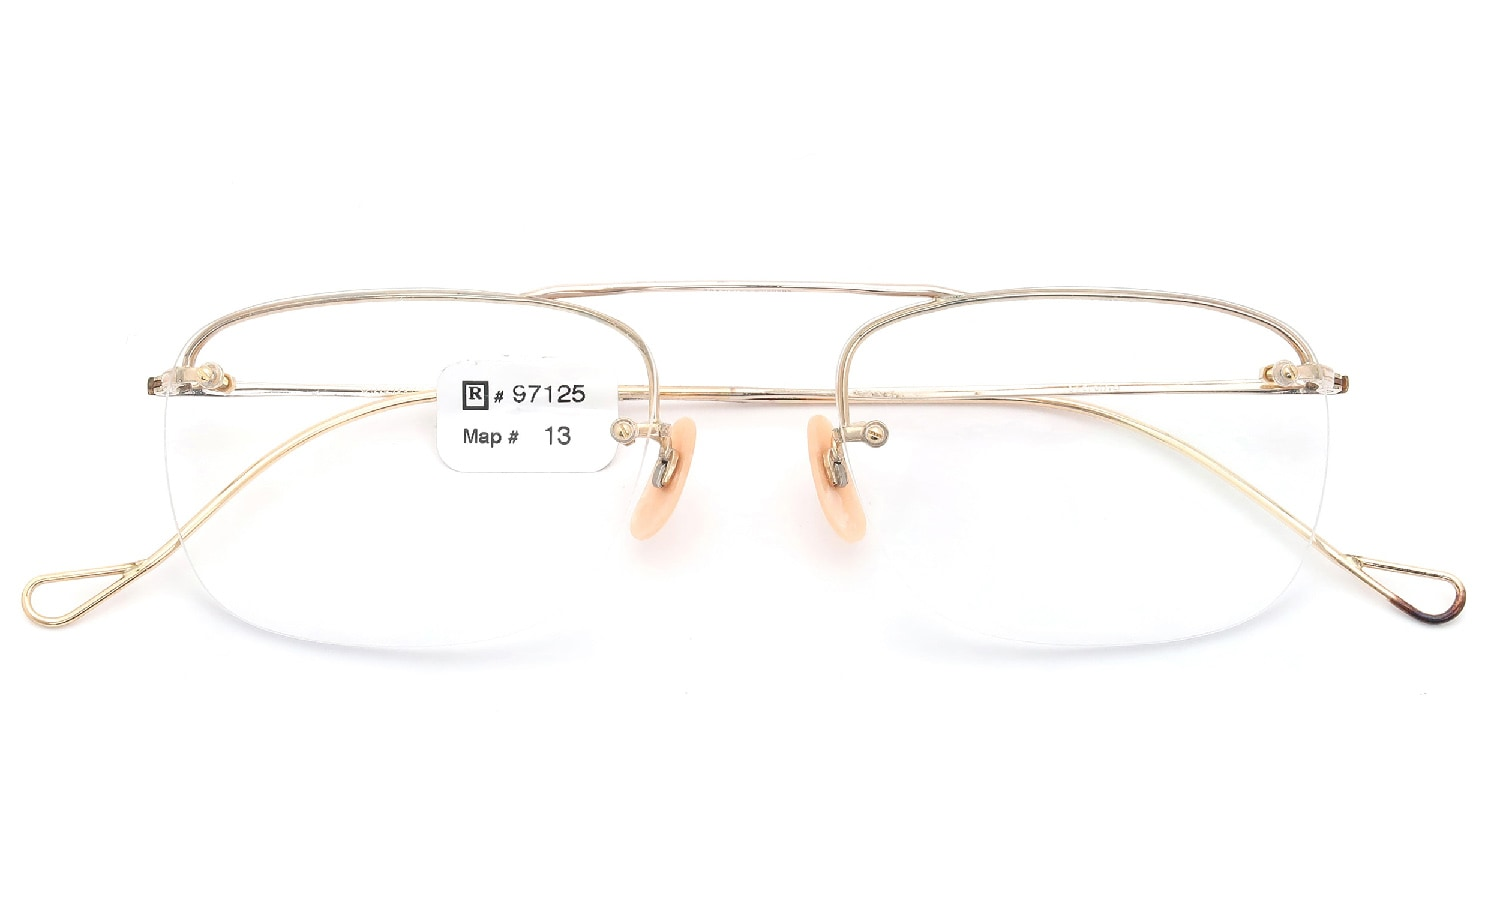 The Spectacle/ Shuron vintage メガネ